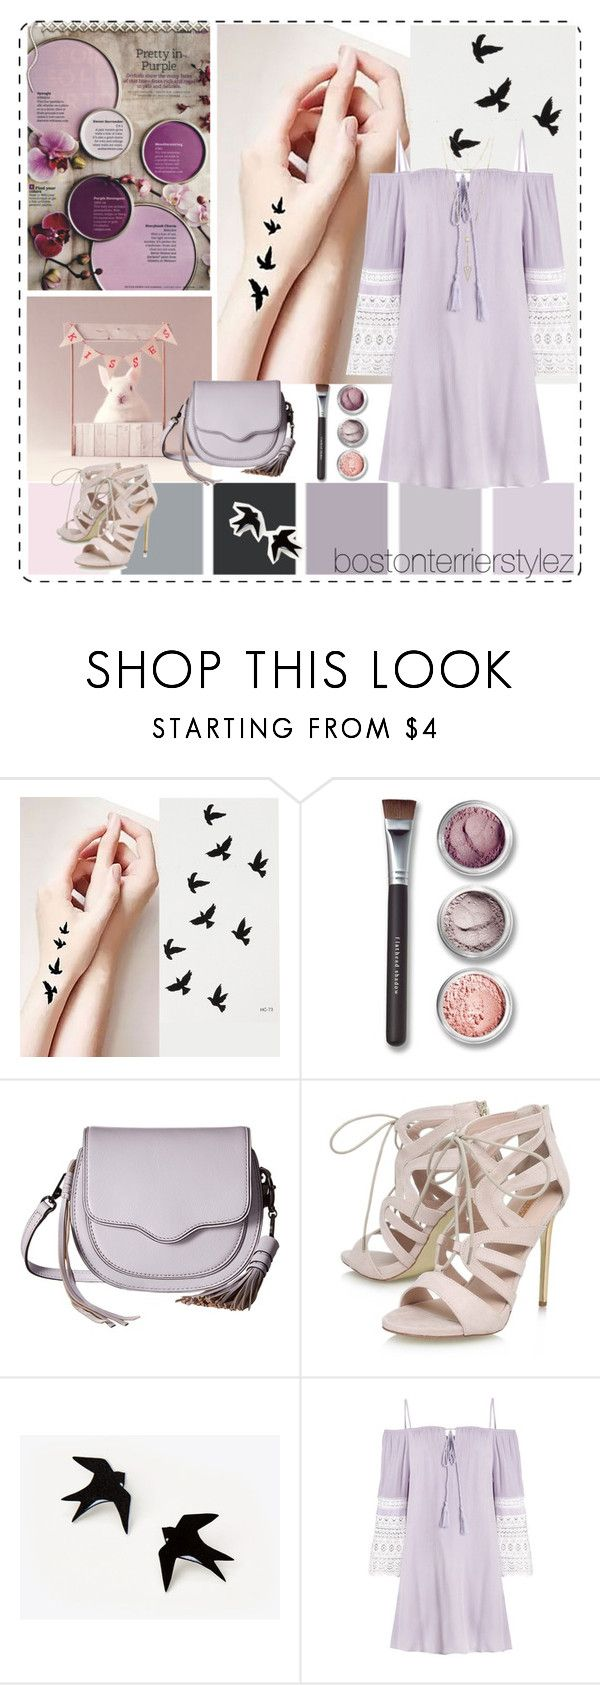 """""""Purple (& Some Pink)"""" by bostonterrierstylez ❤ liked on Polyvore featuring Seed Design, Bare Escentuals, Rebecca Minkoff, Carvela, House of Harlow 1960 and bostontseedscollection"""